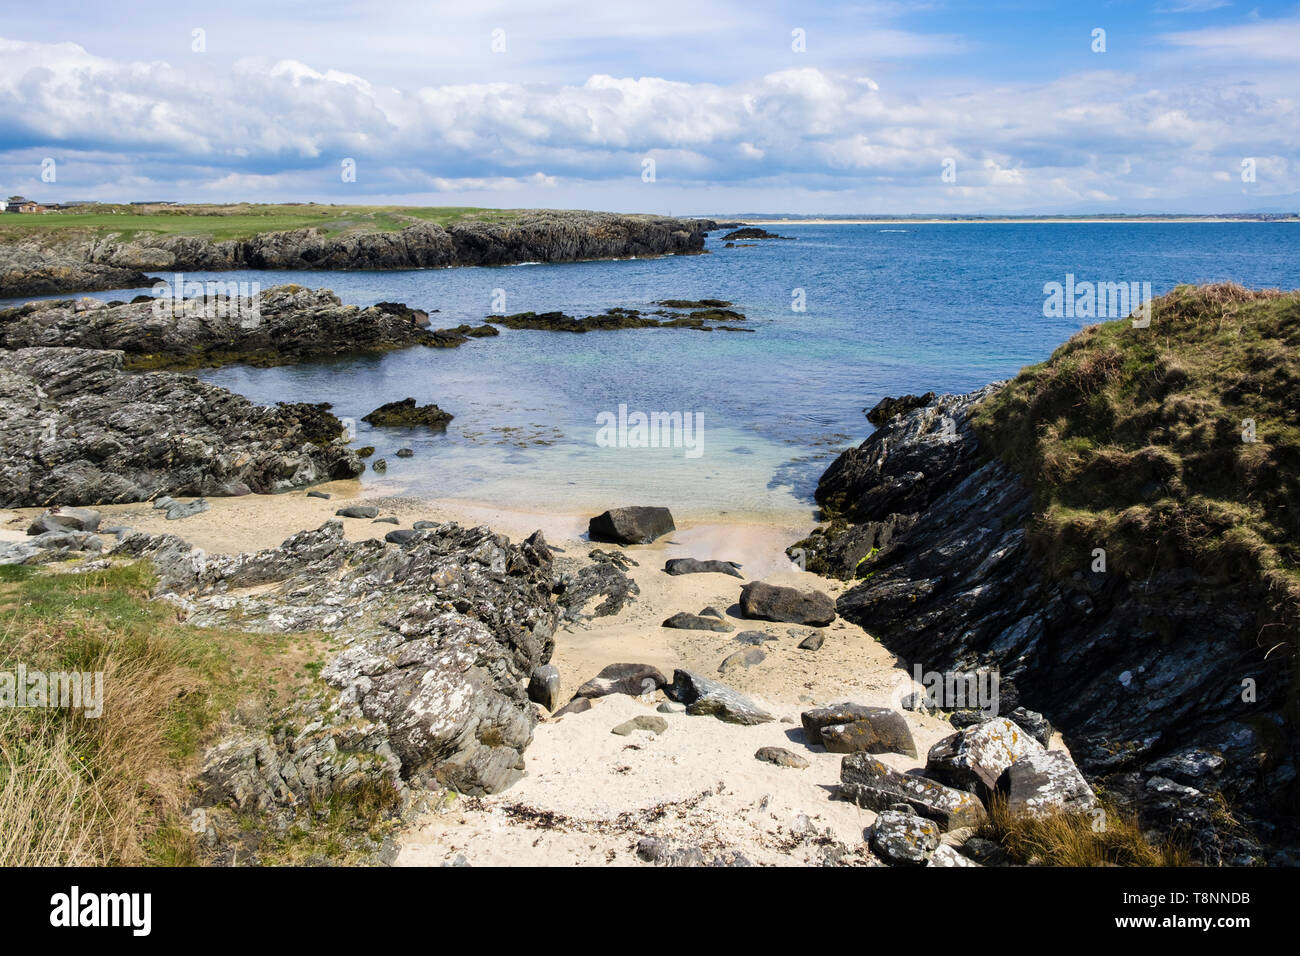 Small sandy beach in a rocky cove between Borthwen and Silver Bay, Rhoscolyn, Isle of Anglesey, Wales, UK, Britain Stock Photo